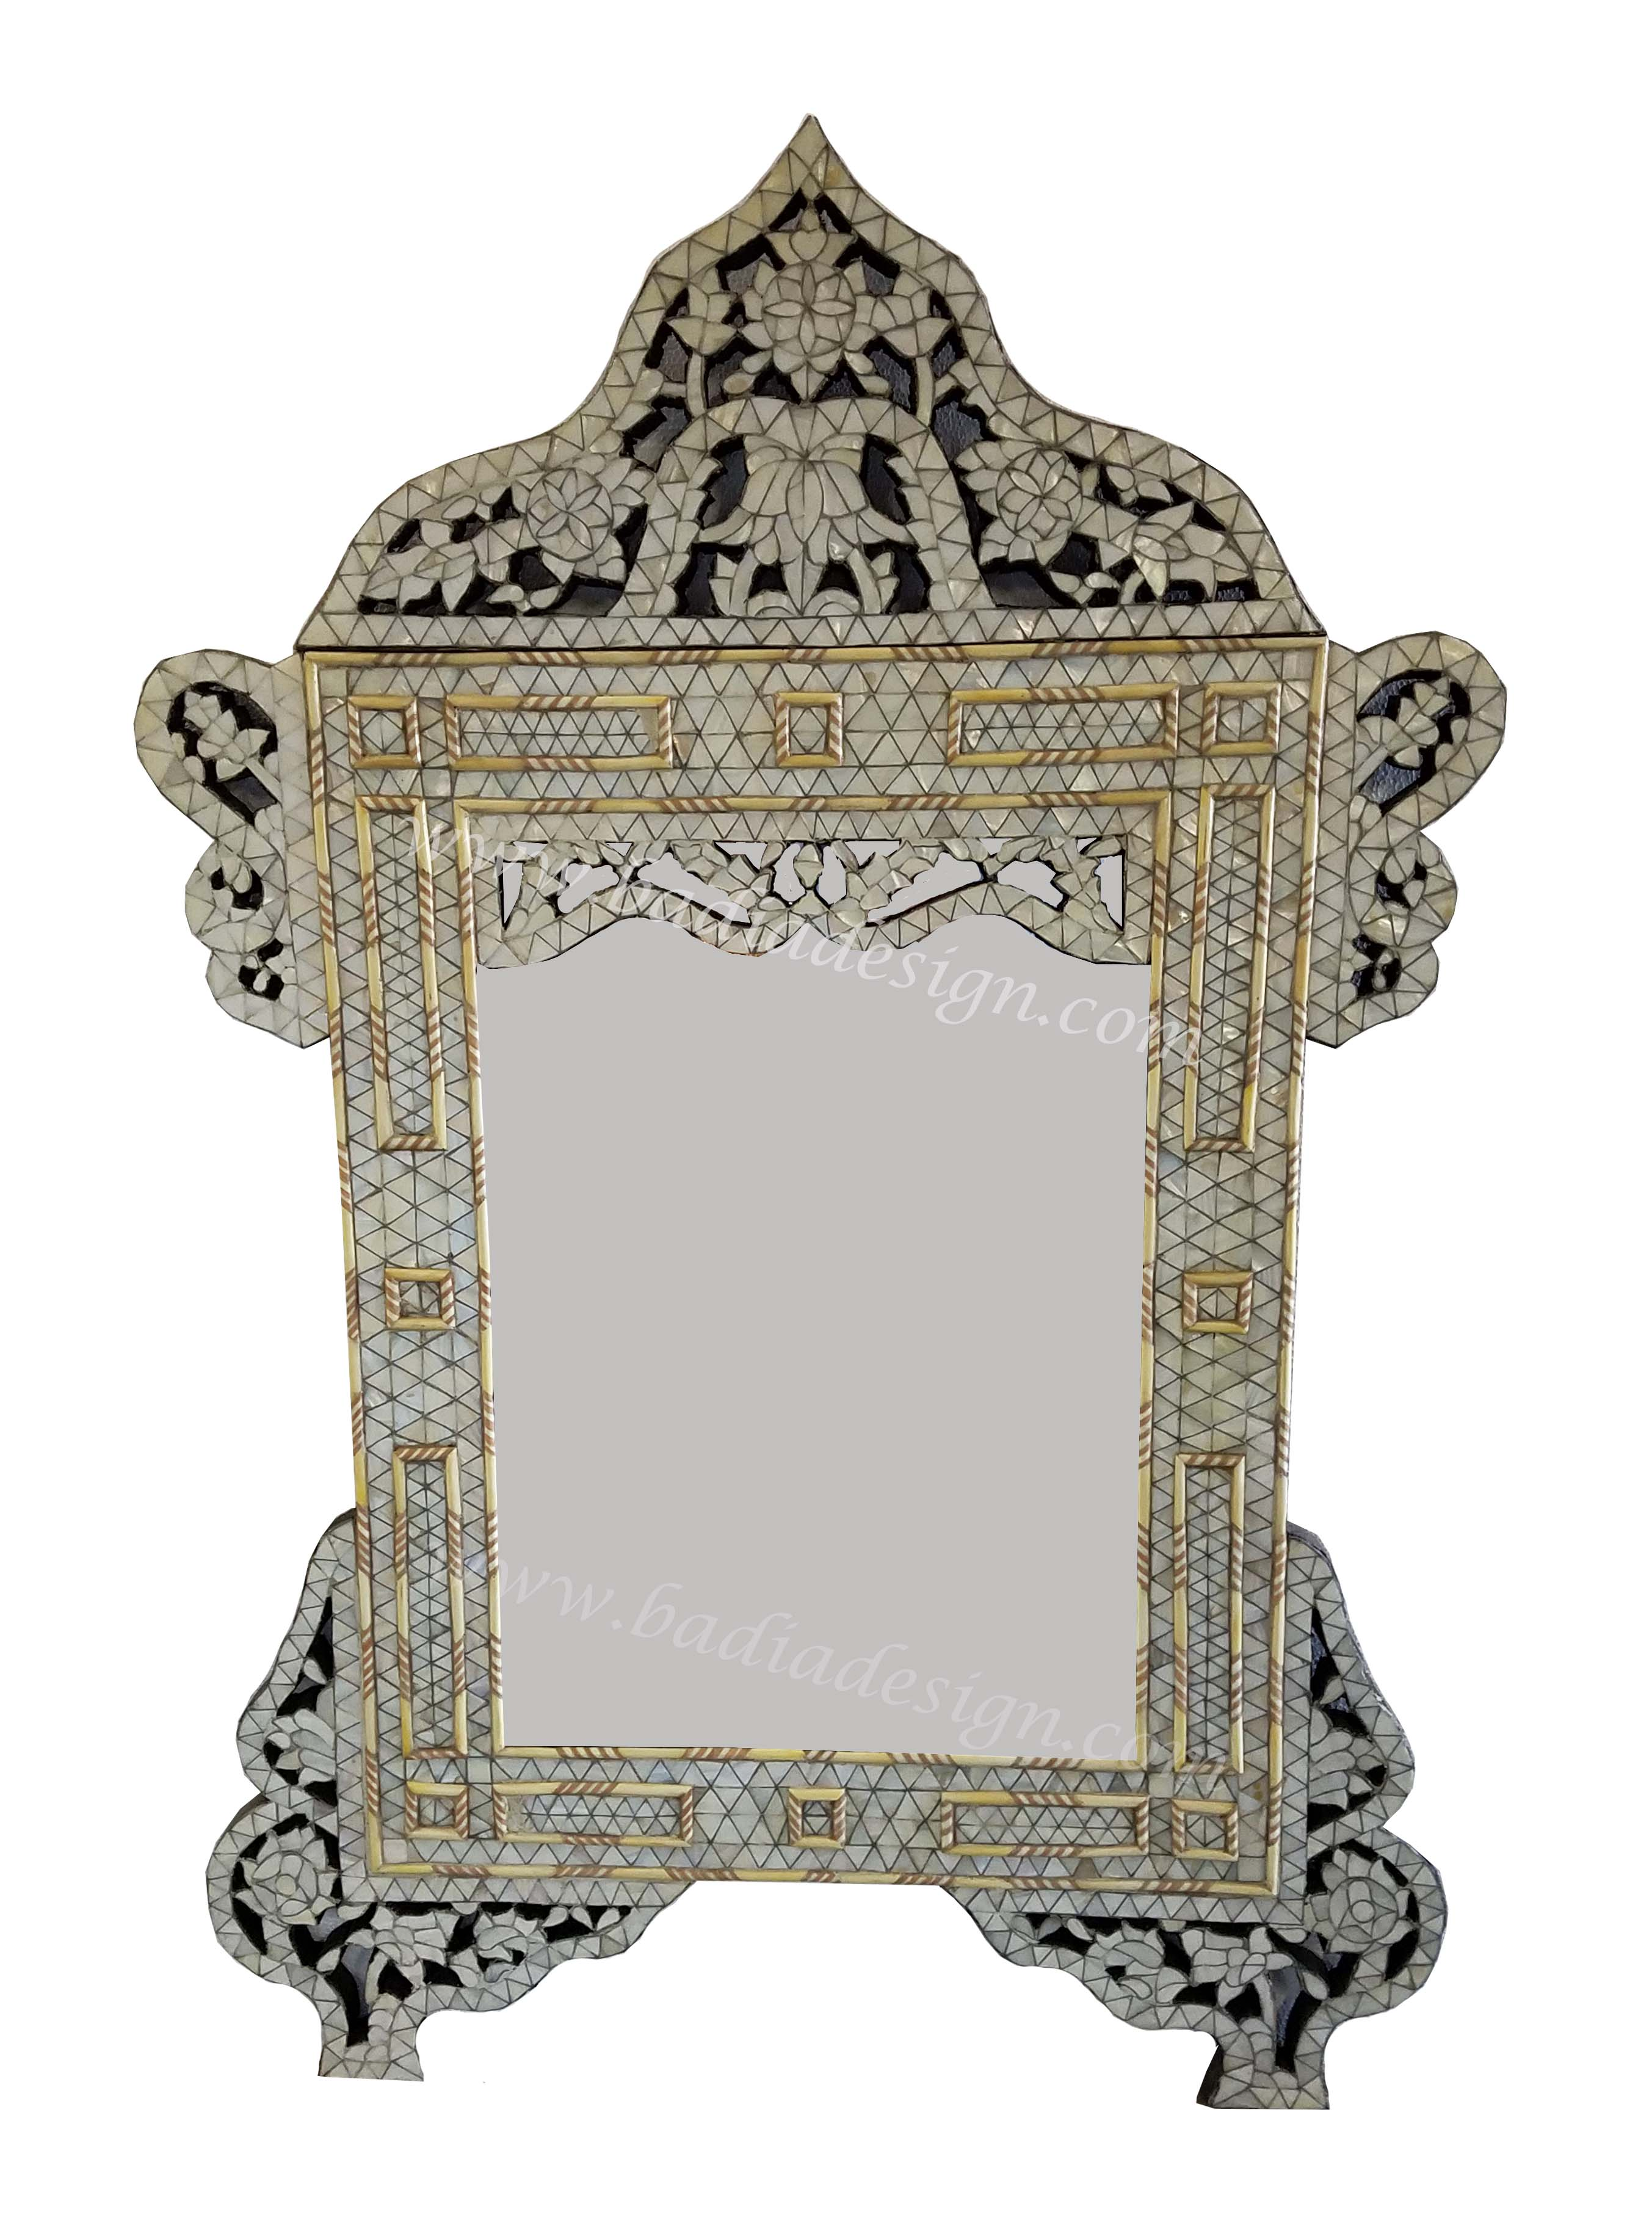 moroccan-mother-of-pearl-mirror-m-mop022.jpg